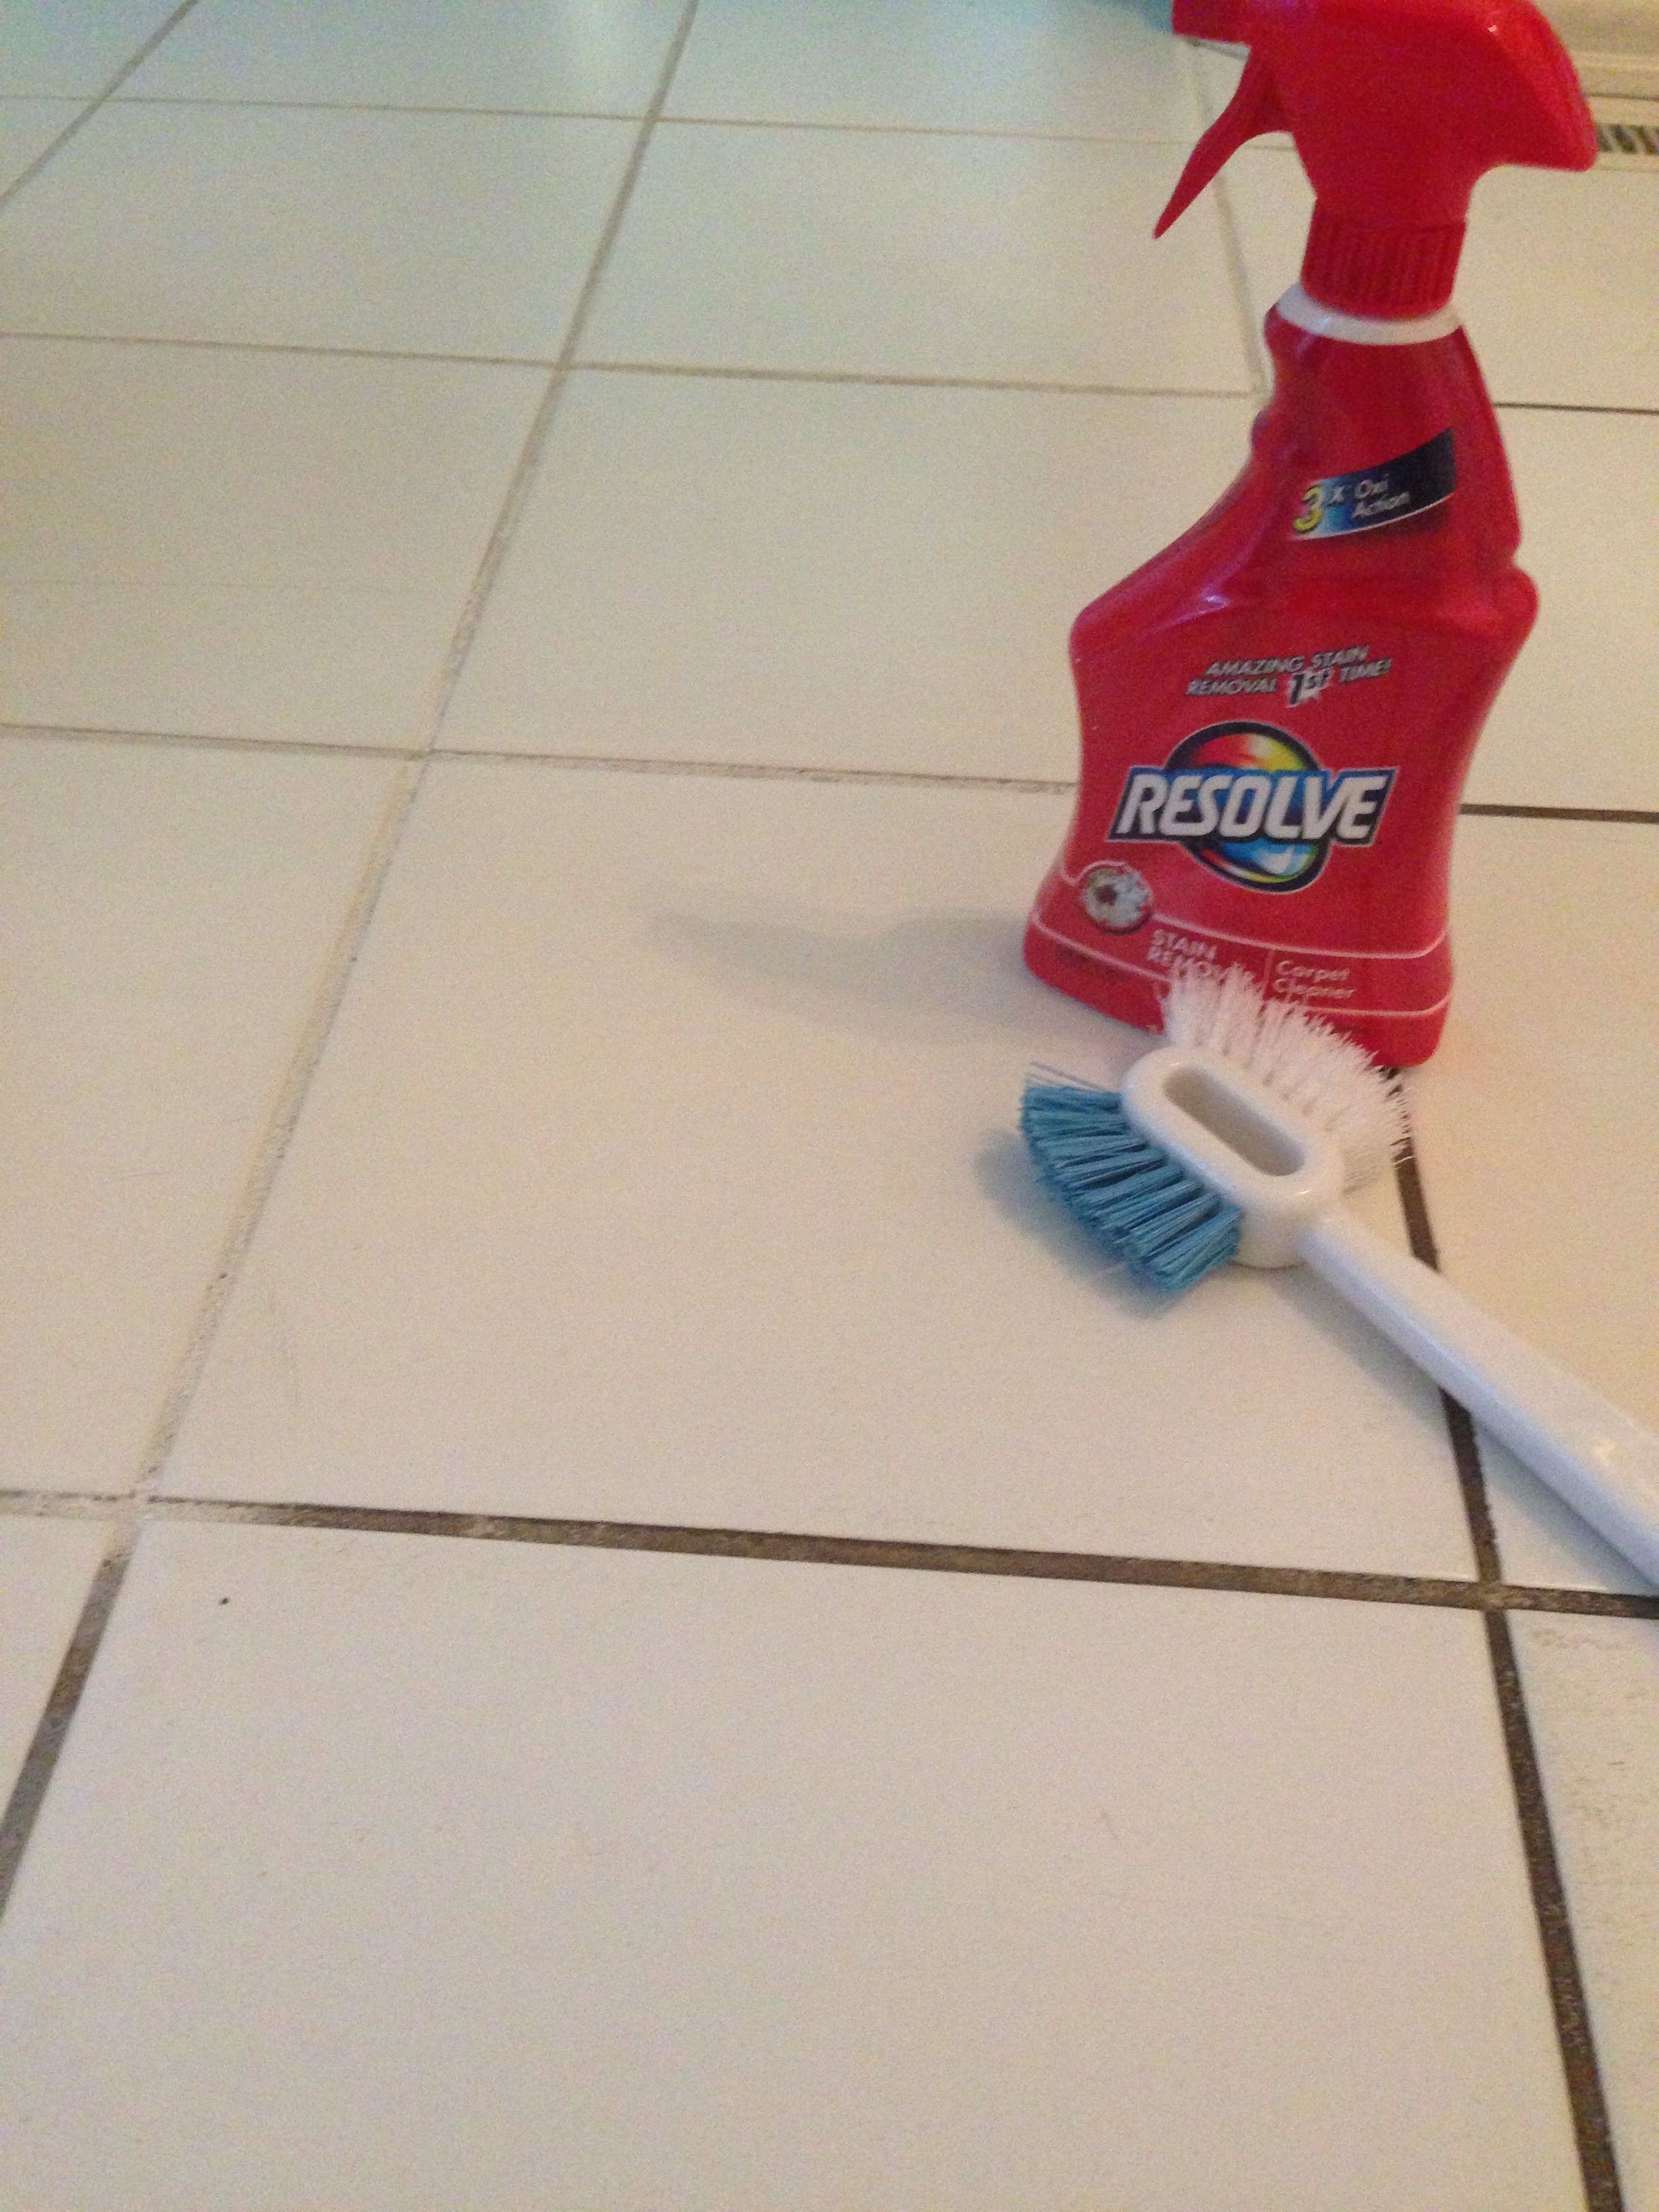 Resolve Carpet Cleaner To Clean Grout Hydrogen Peroxide Grout And - Cleaning linoleum floors with vinegar and baking soda